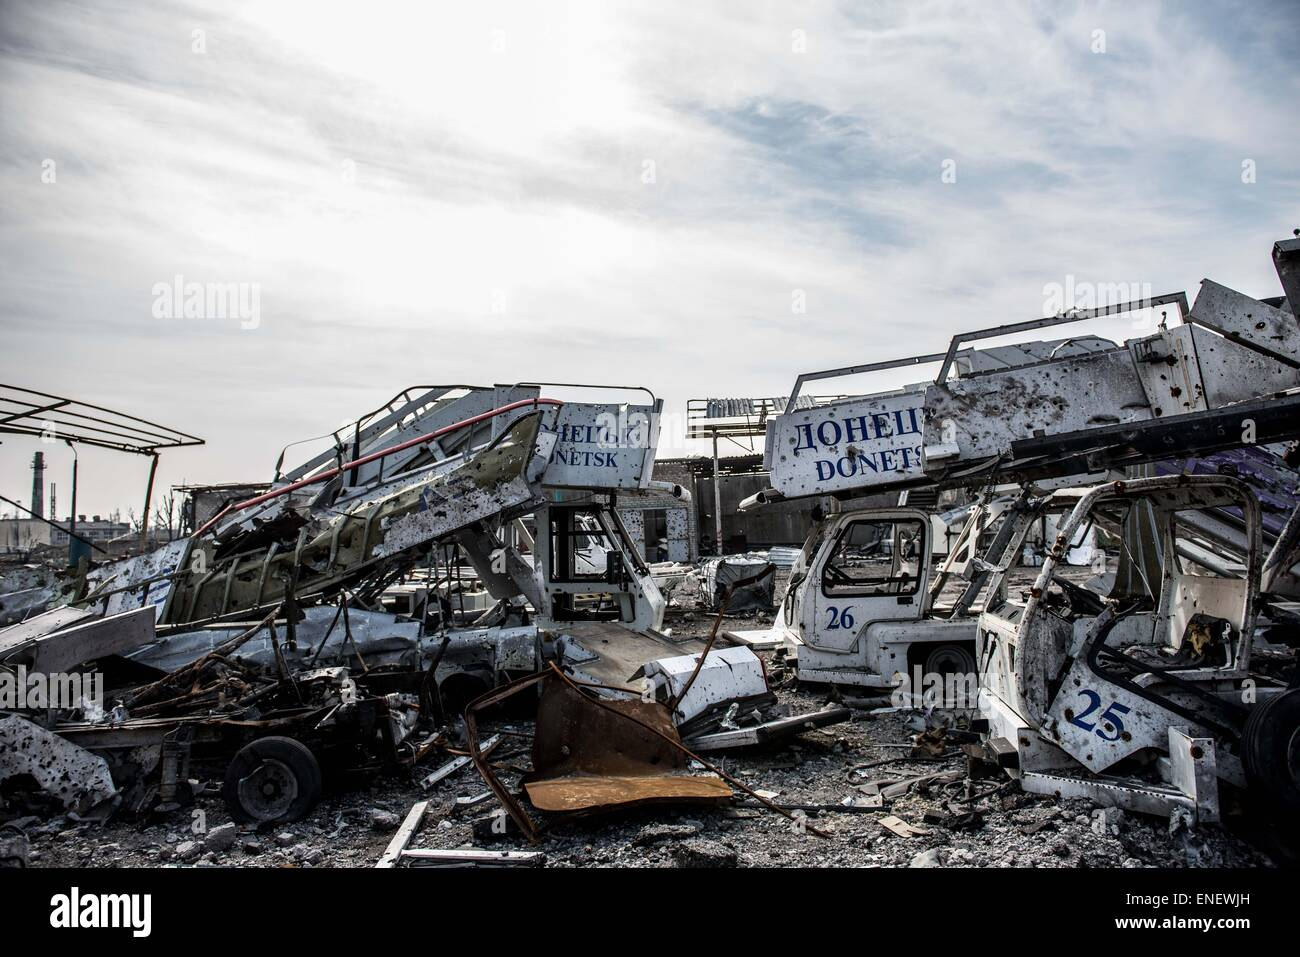 Donetsk airport has been largely destroyed by the conflict in Eastern Ukraine - Stock Image